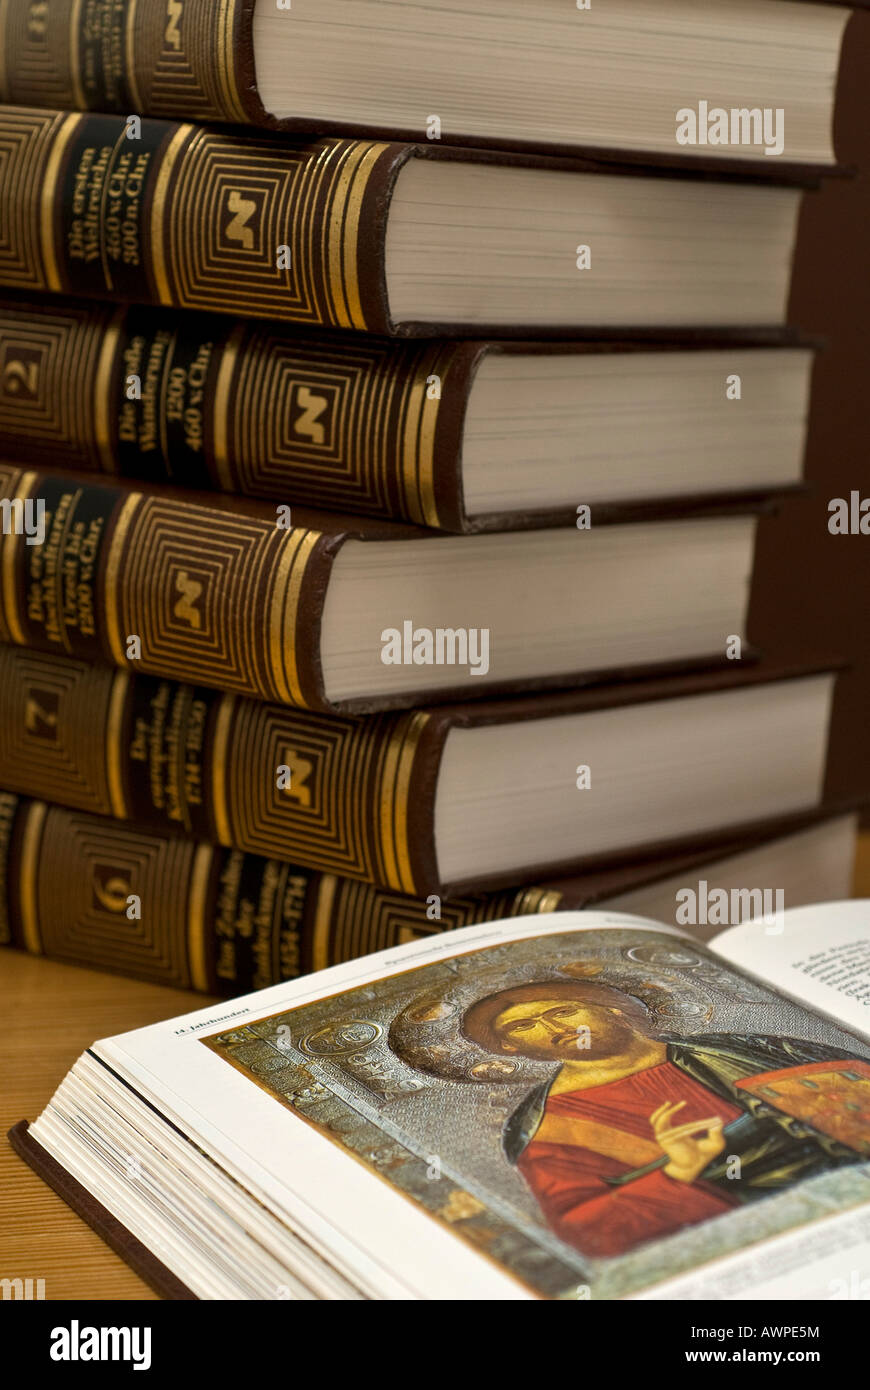 Encyclopaedia, world and cultural history - Stock Image